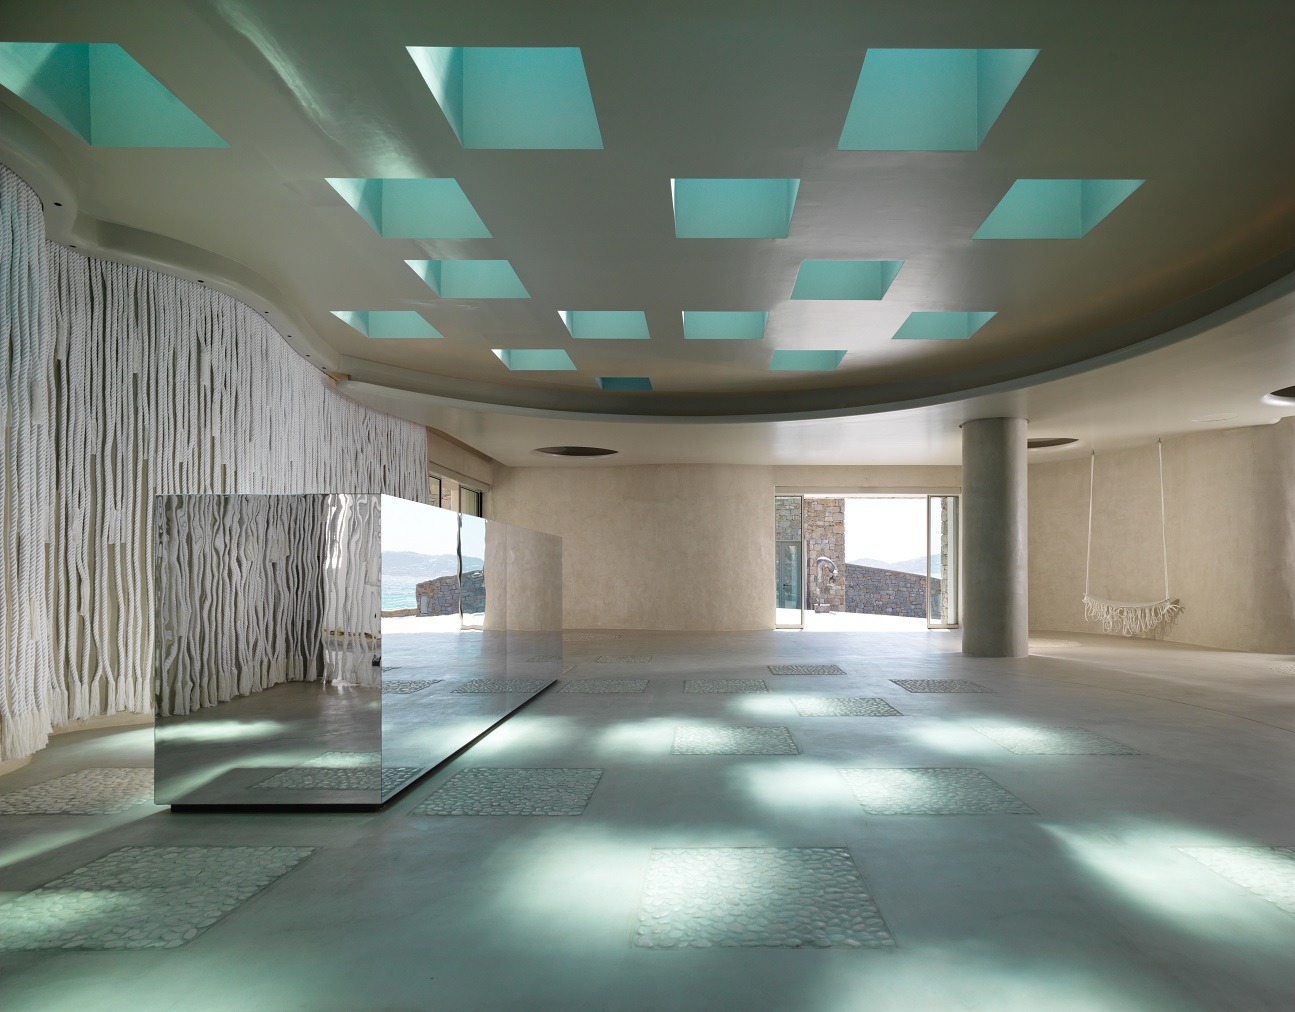 Minimalist check-in desk with colours of turquoise in ceiling and reflection on floor